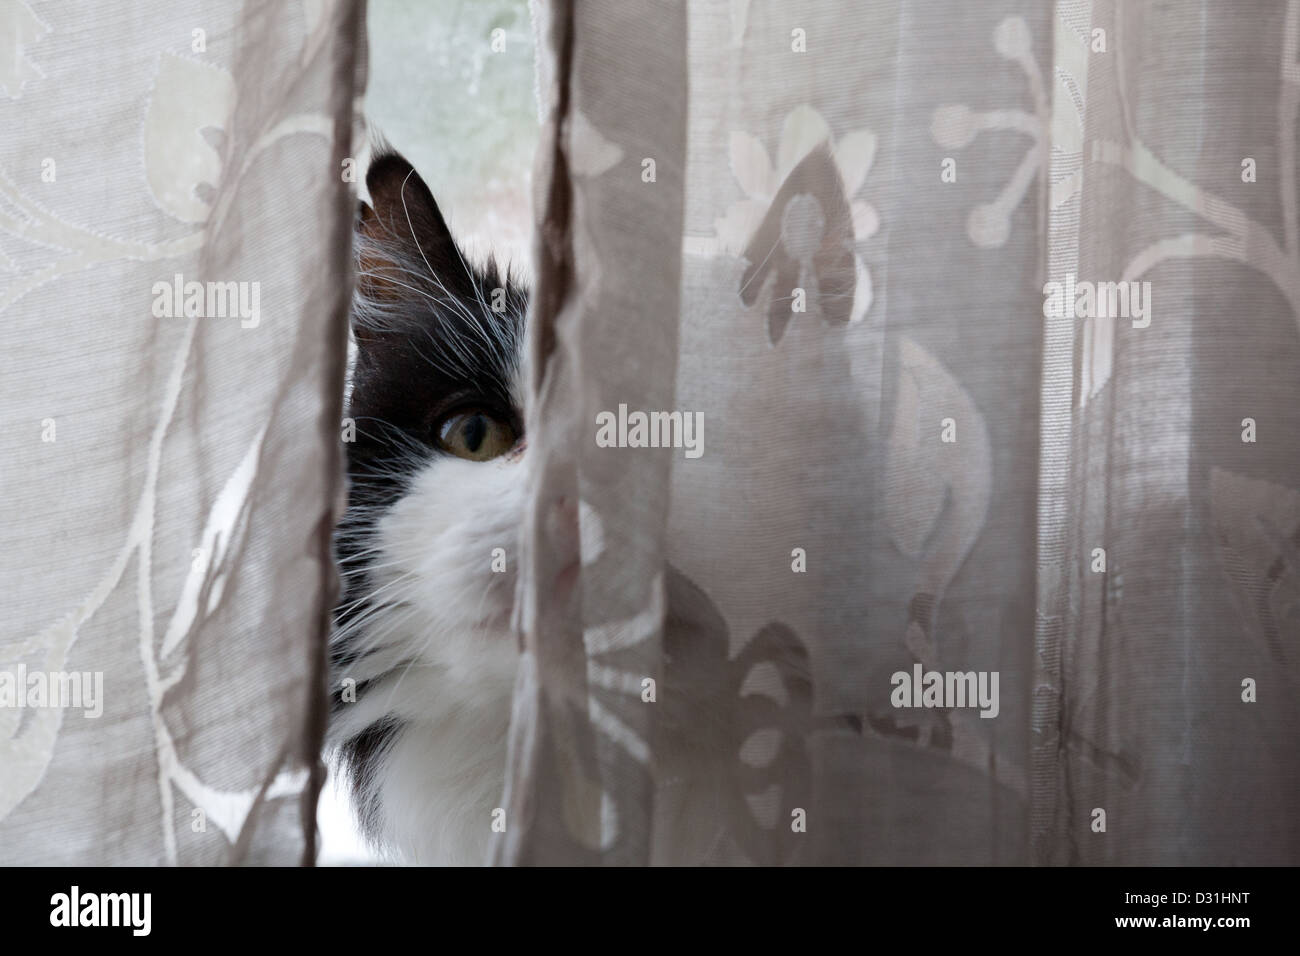 Black and white domestic cat behind curtain. - Stock Image